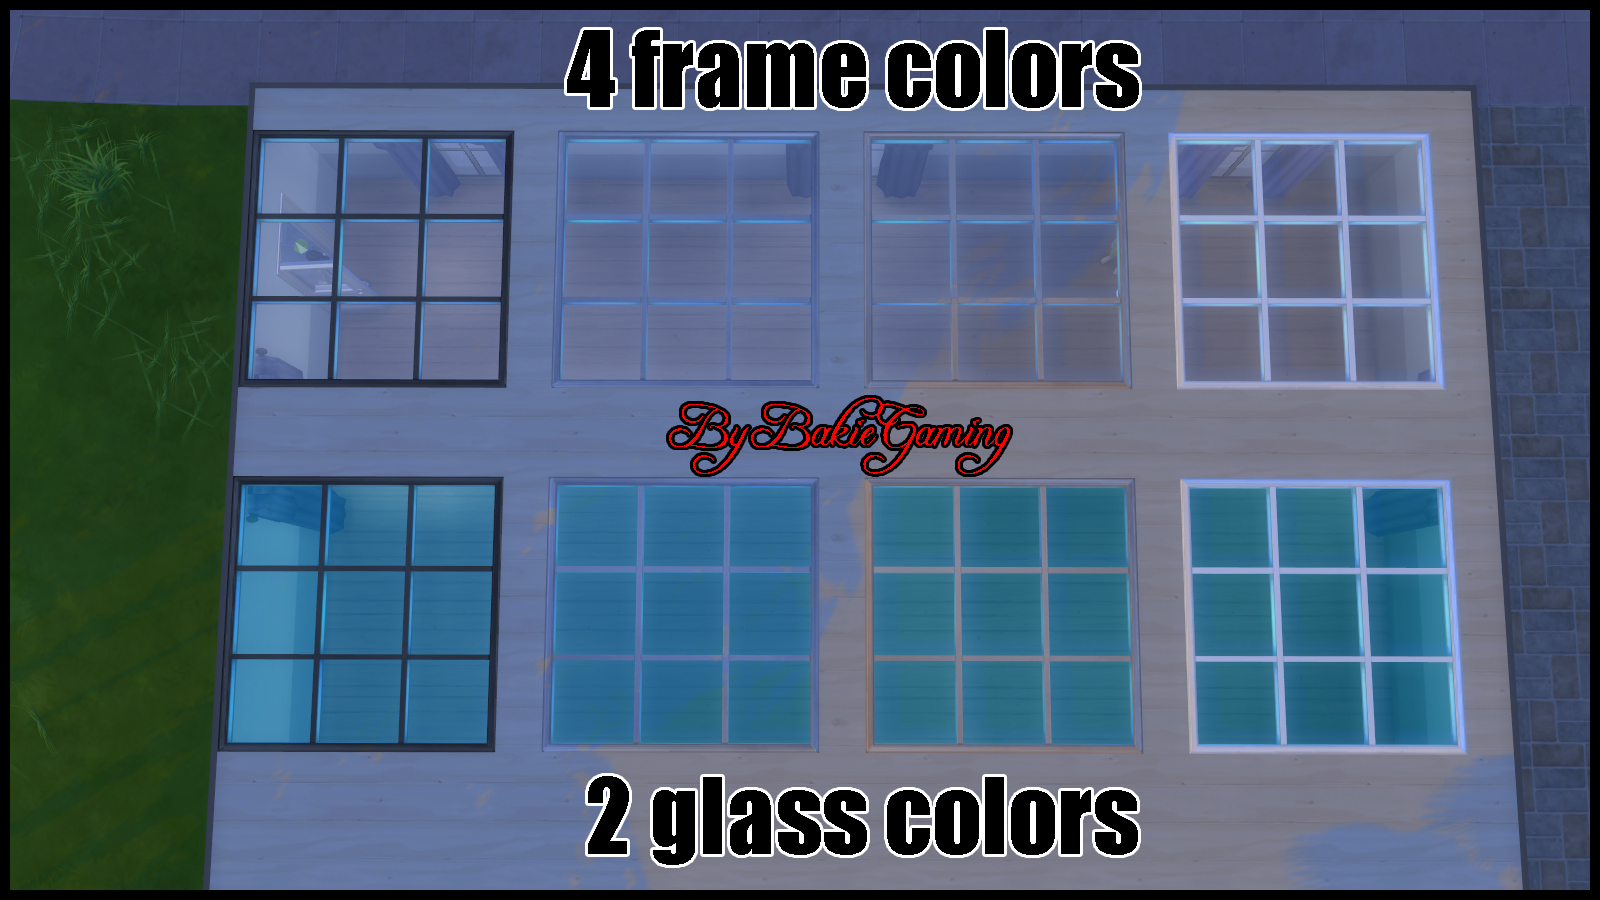 Sims 4 mods traits downloads 187 sims 4 updates 187 page 58 of 100 - Transparent Floor Windows By Bakie Mod The Sims